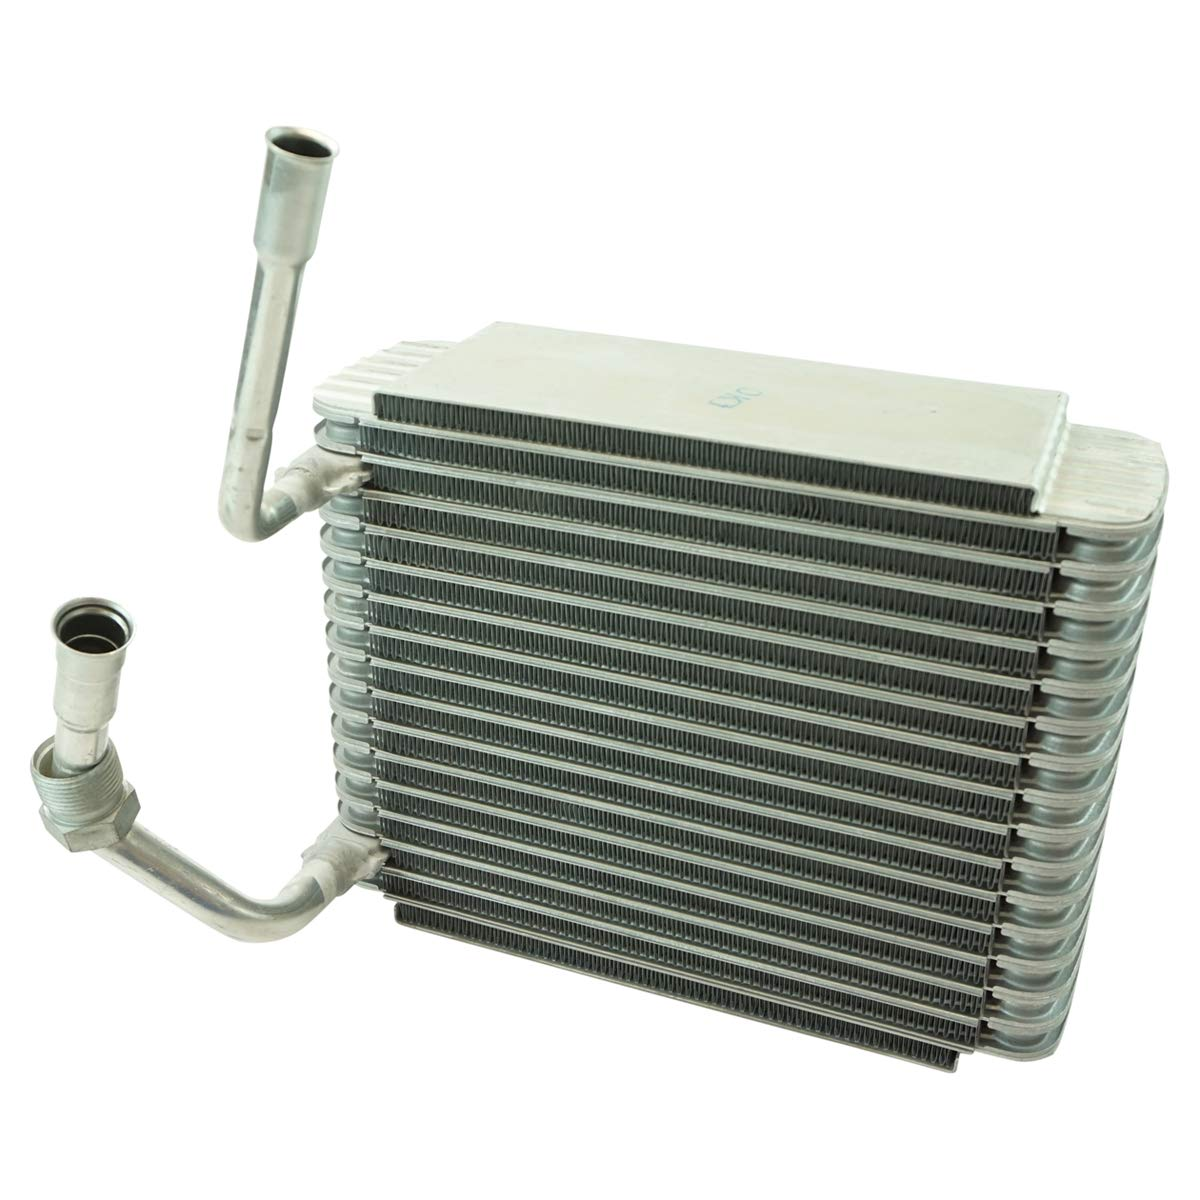 1A Auto AC Evaporator Core A//C Air Conditioning for Ford Excursion F250 SD F350 F450 New